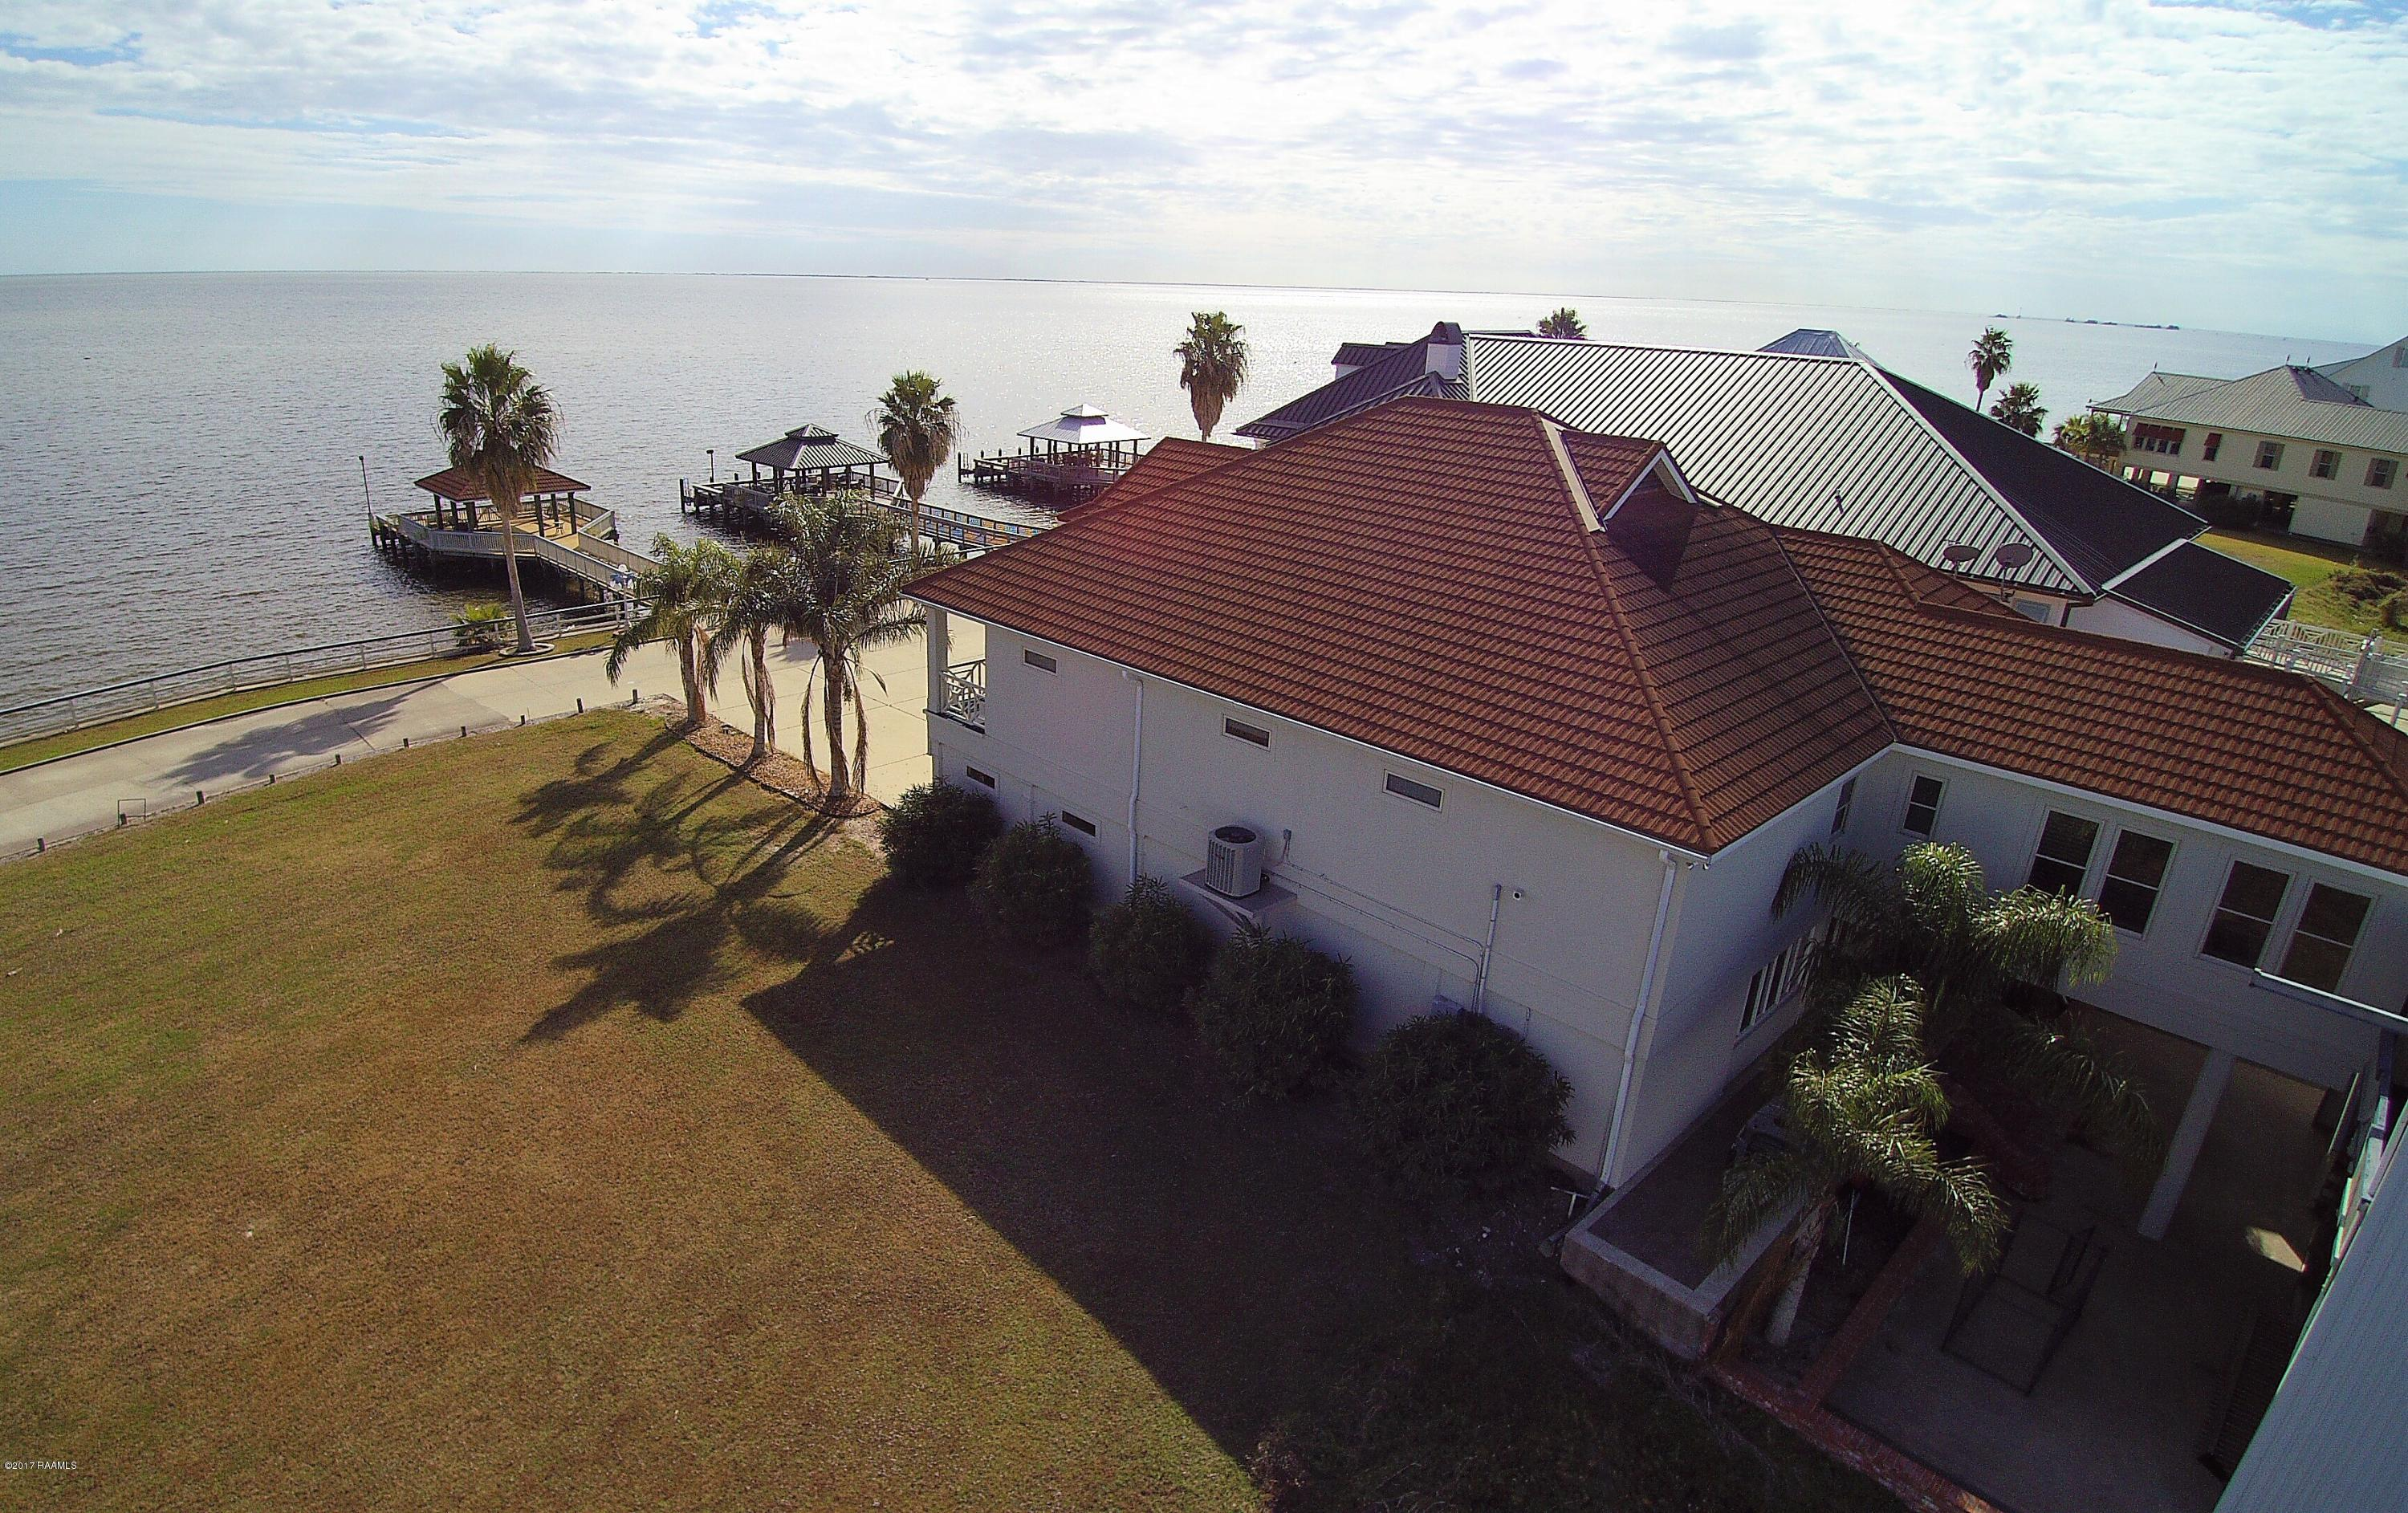 442 Bayview Drive, Cypremort Point, LA 70538 Photo #39